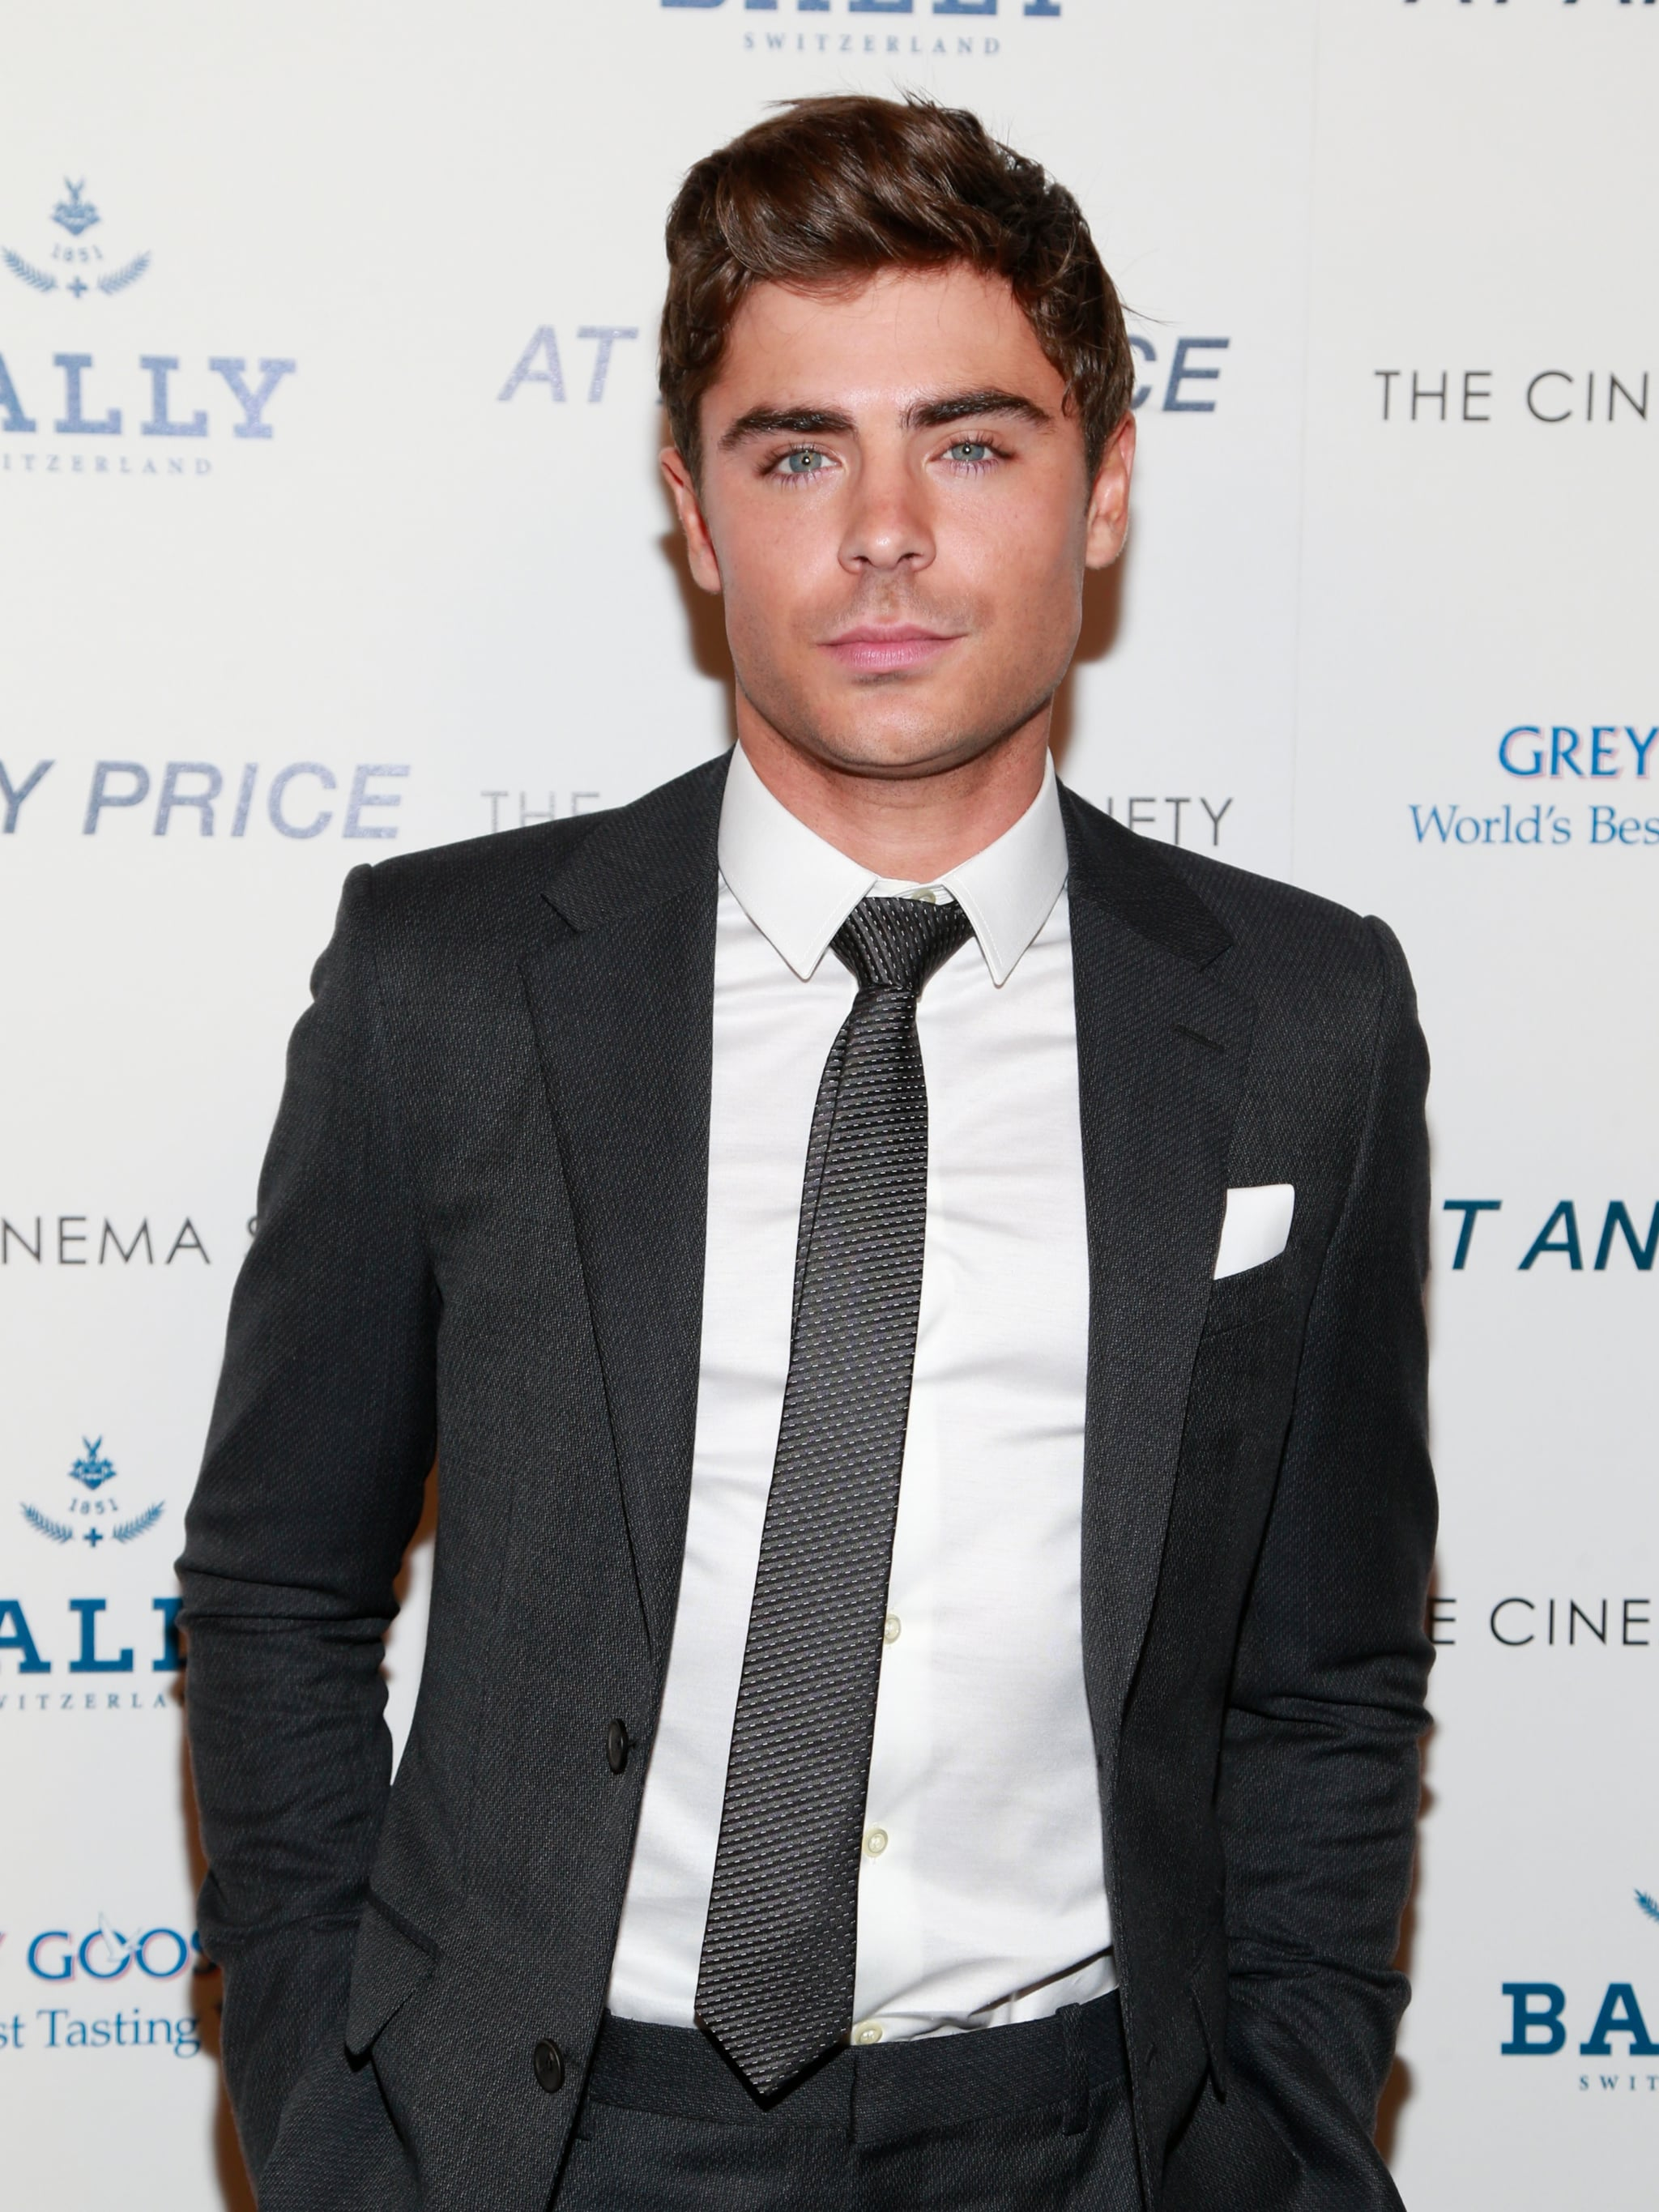 He really mastered smoldering on the red carpet at this point.